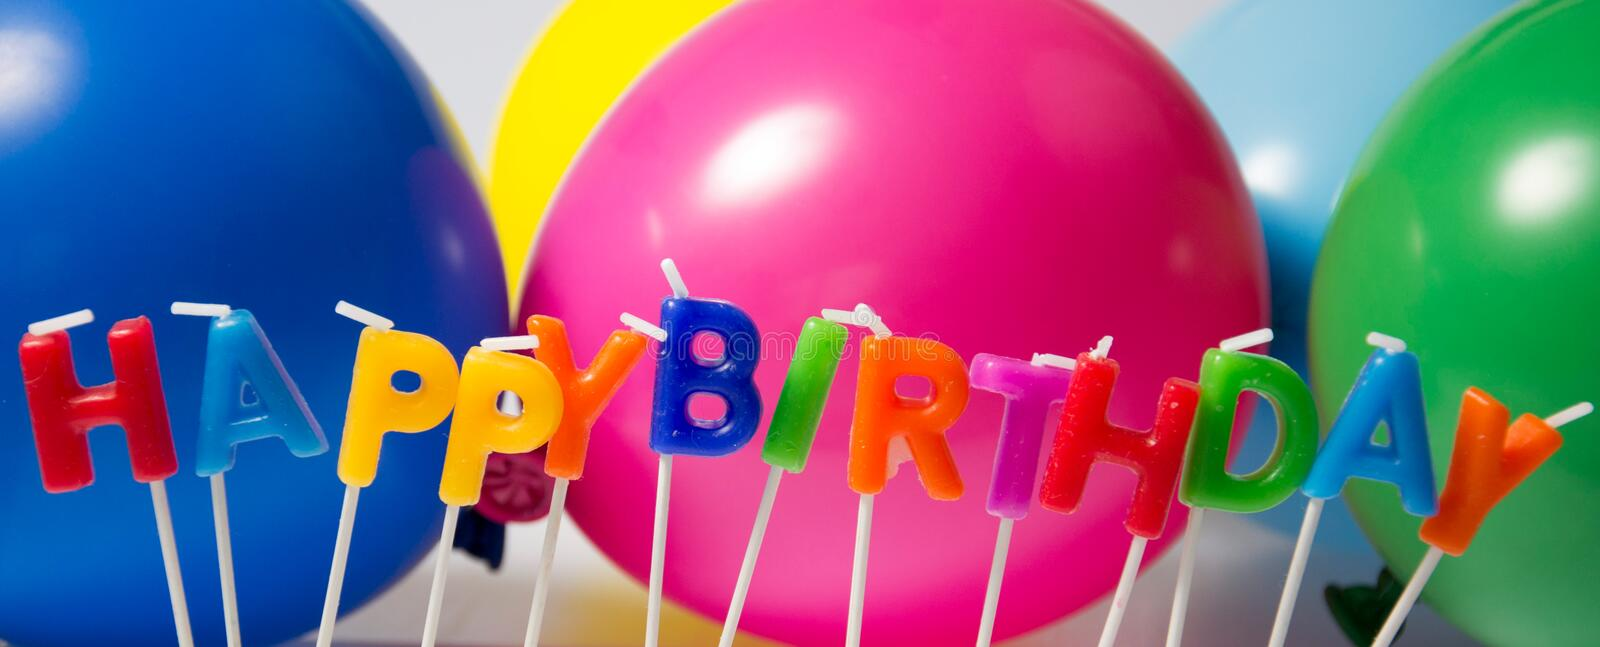 Happy Birthday. Colorful birtday decoration with candles royalty free stock photos